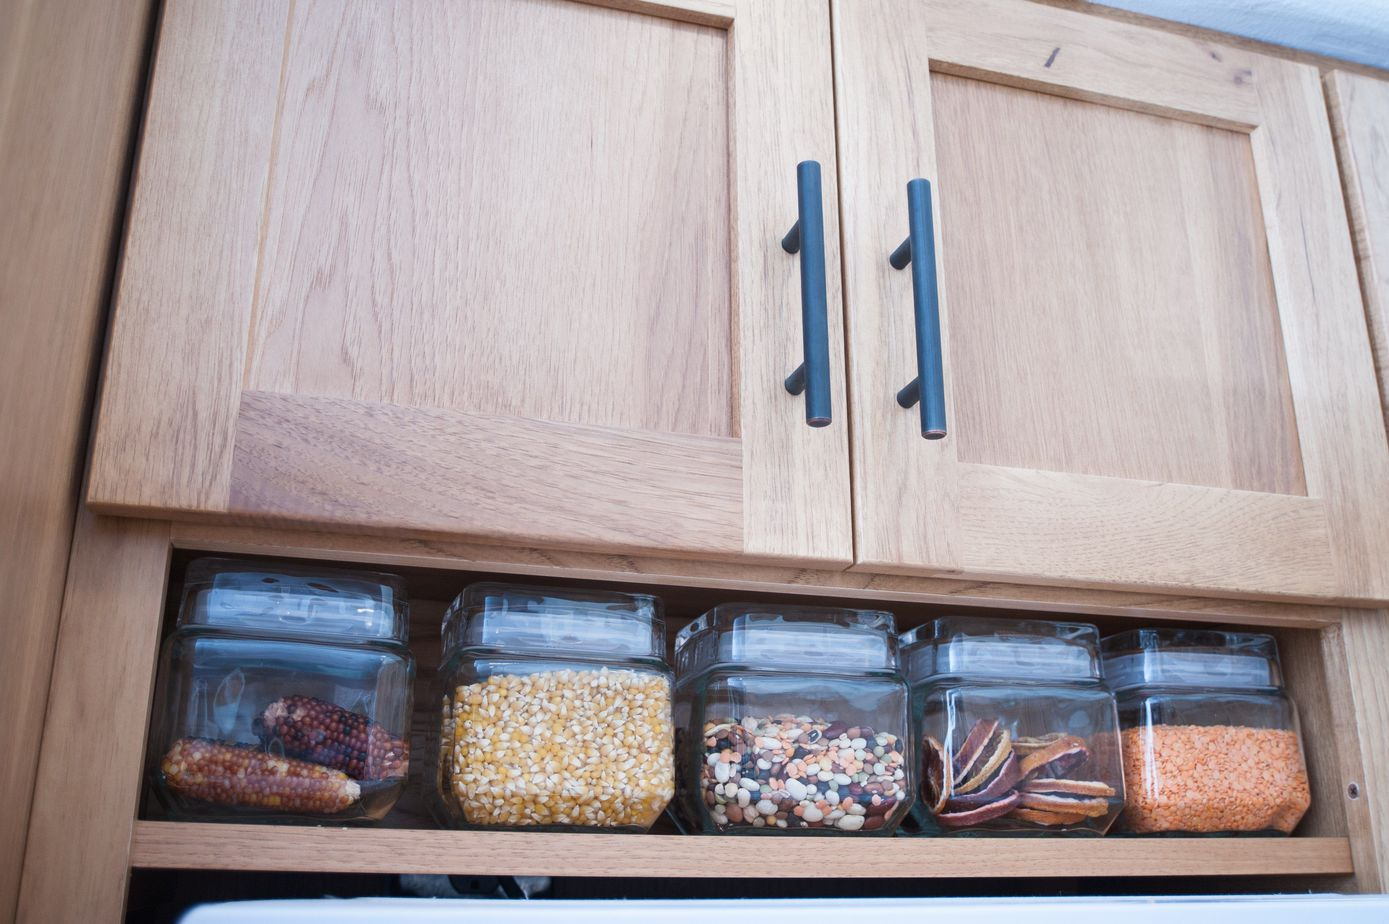 kichen cabinets with storage space for glass jars